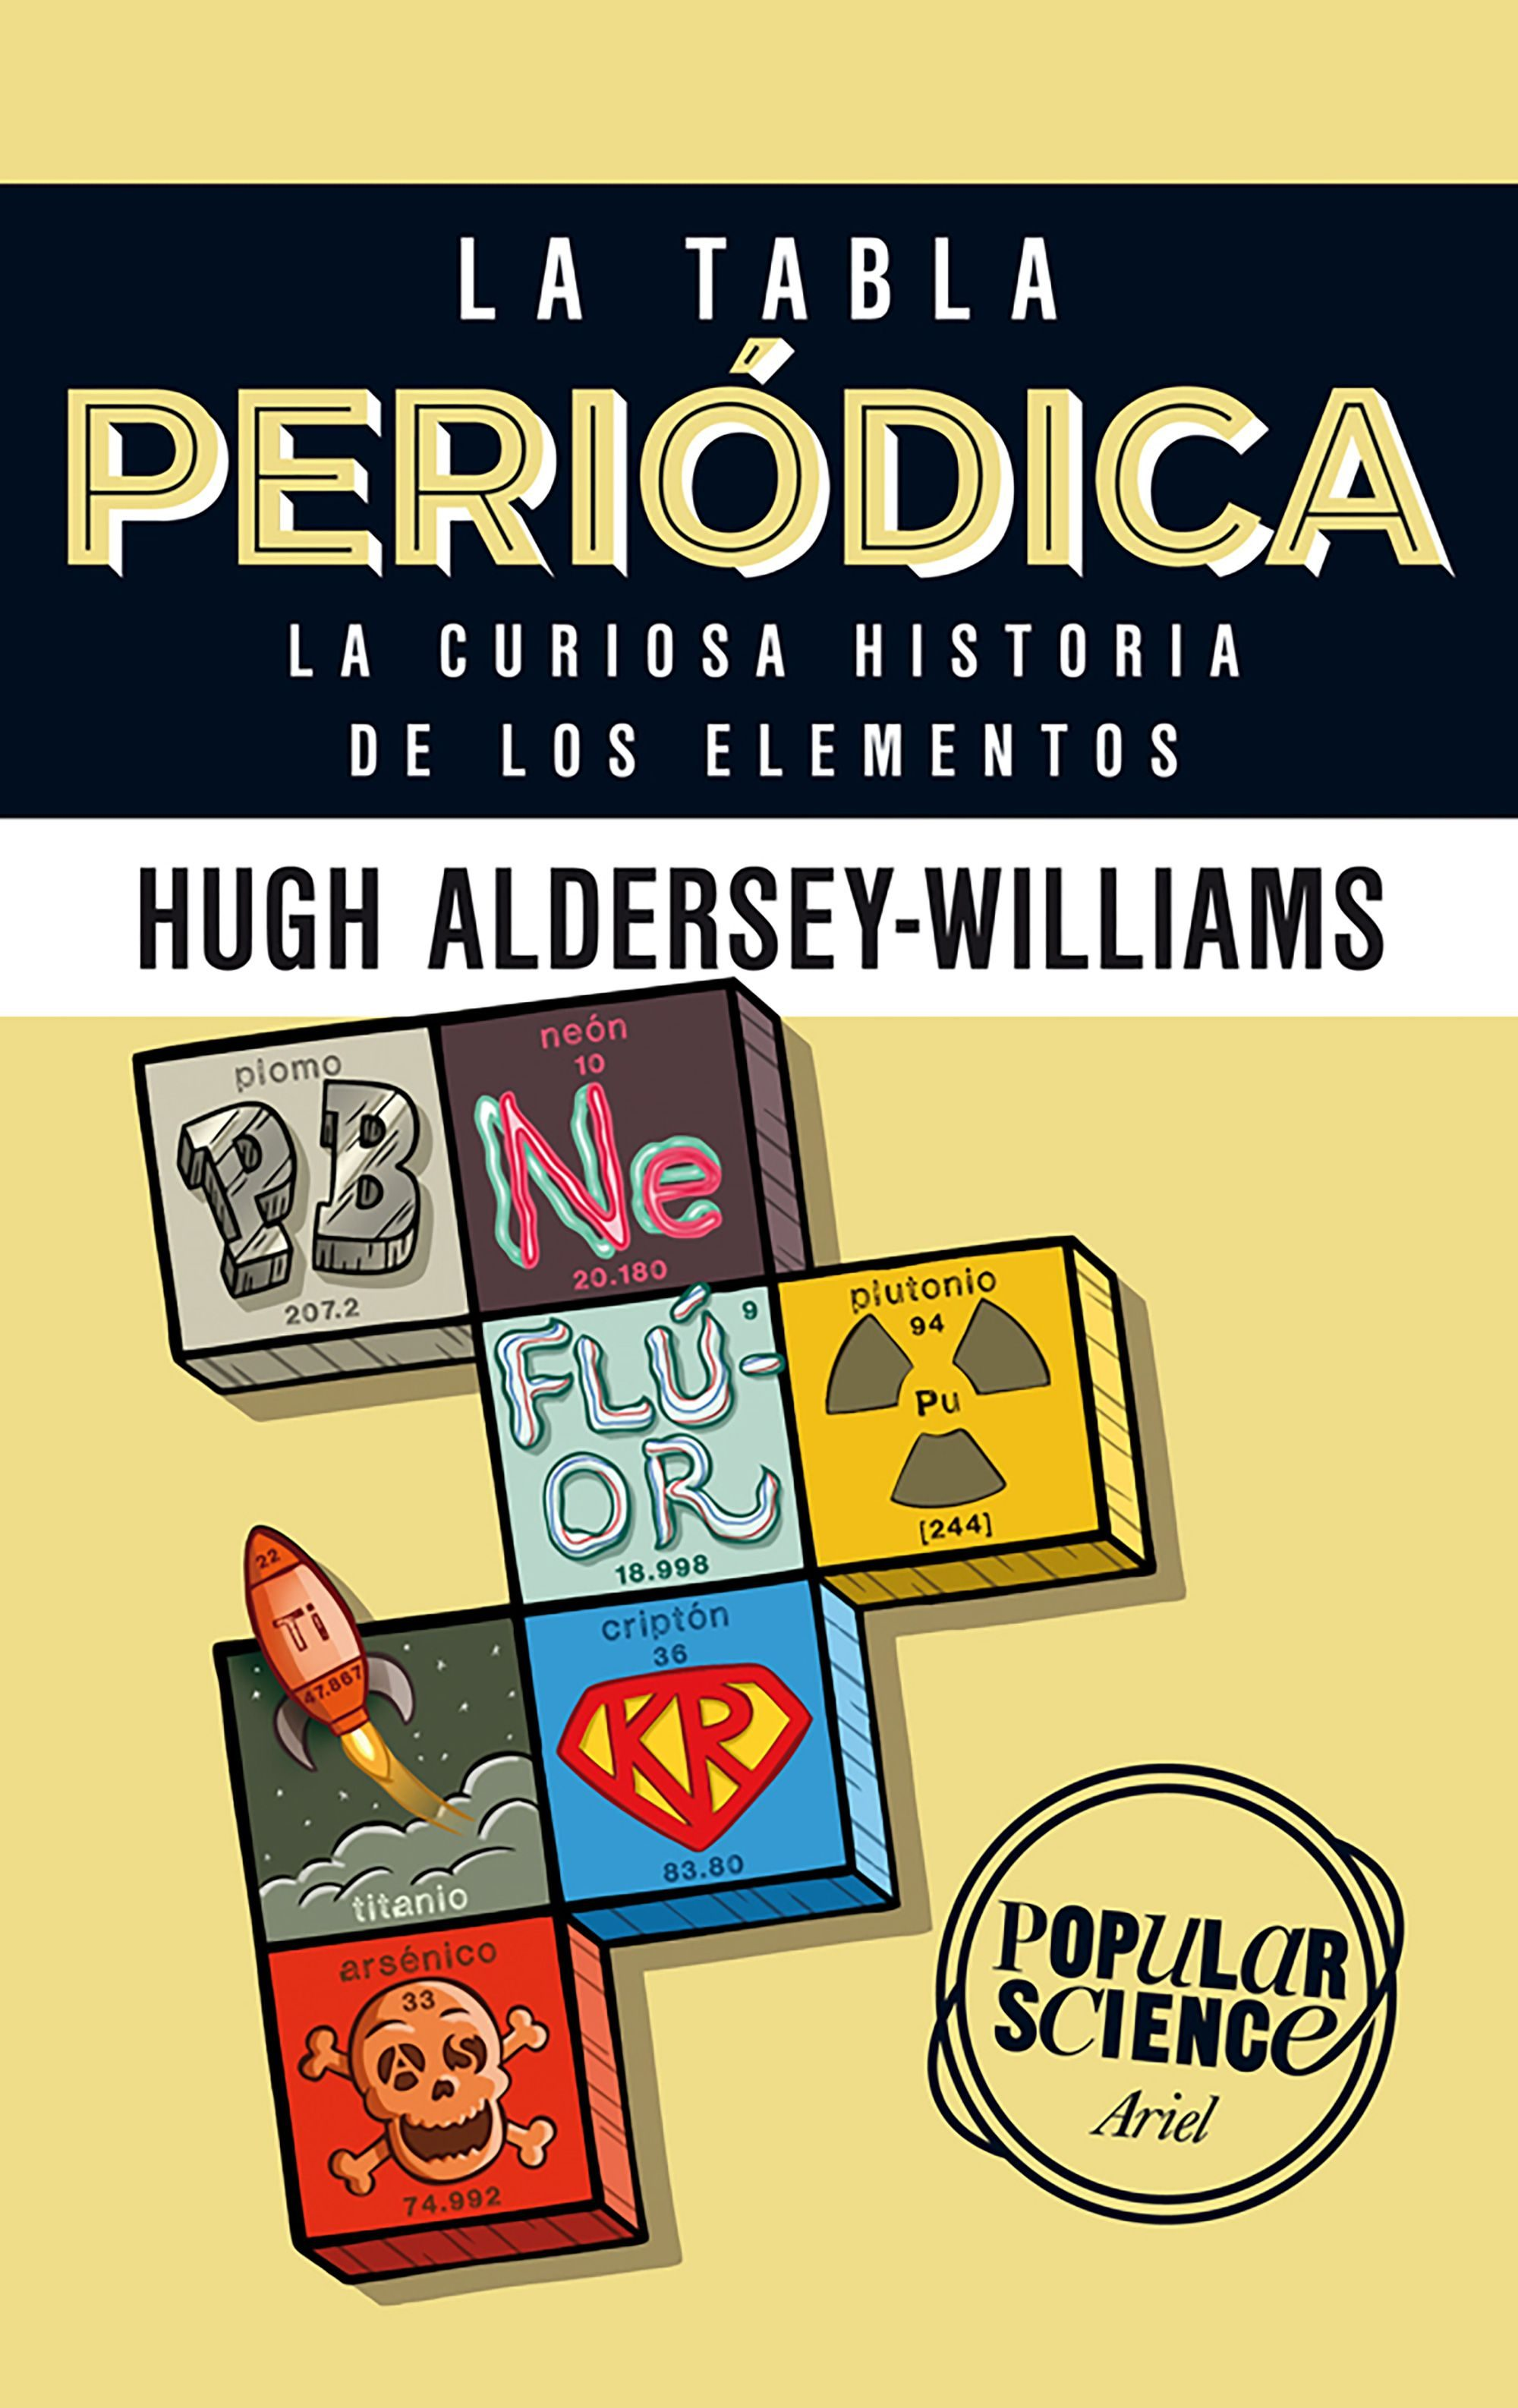 La tabla peridica ebook hugh aldersey williams descargar libro la tabla peridica ebook hugh aldersey williams 9788434406292 urtaz Choice Image